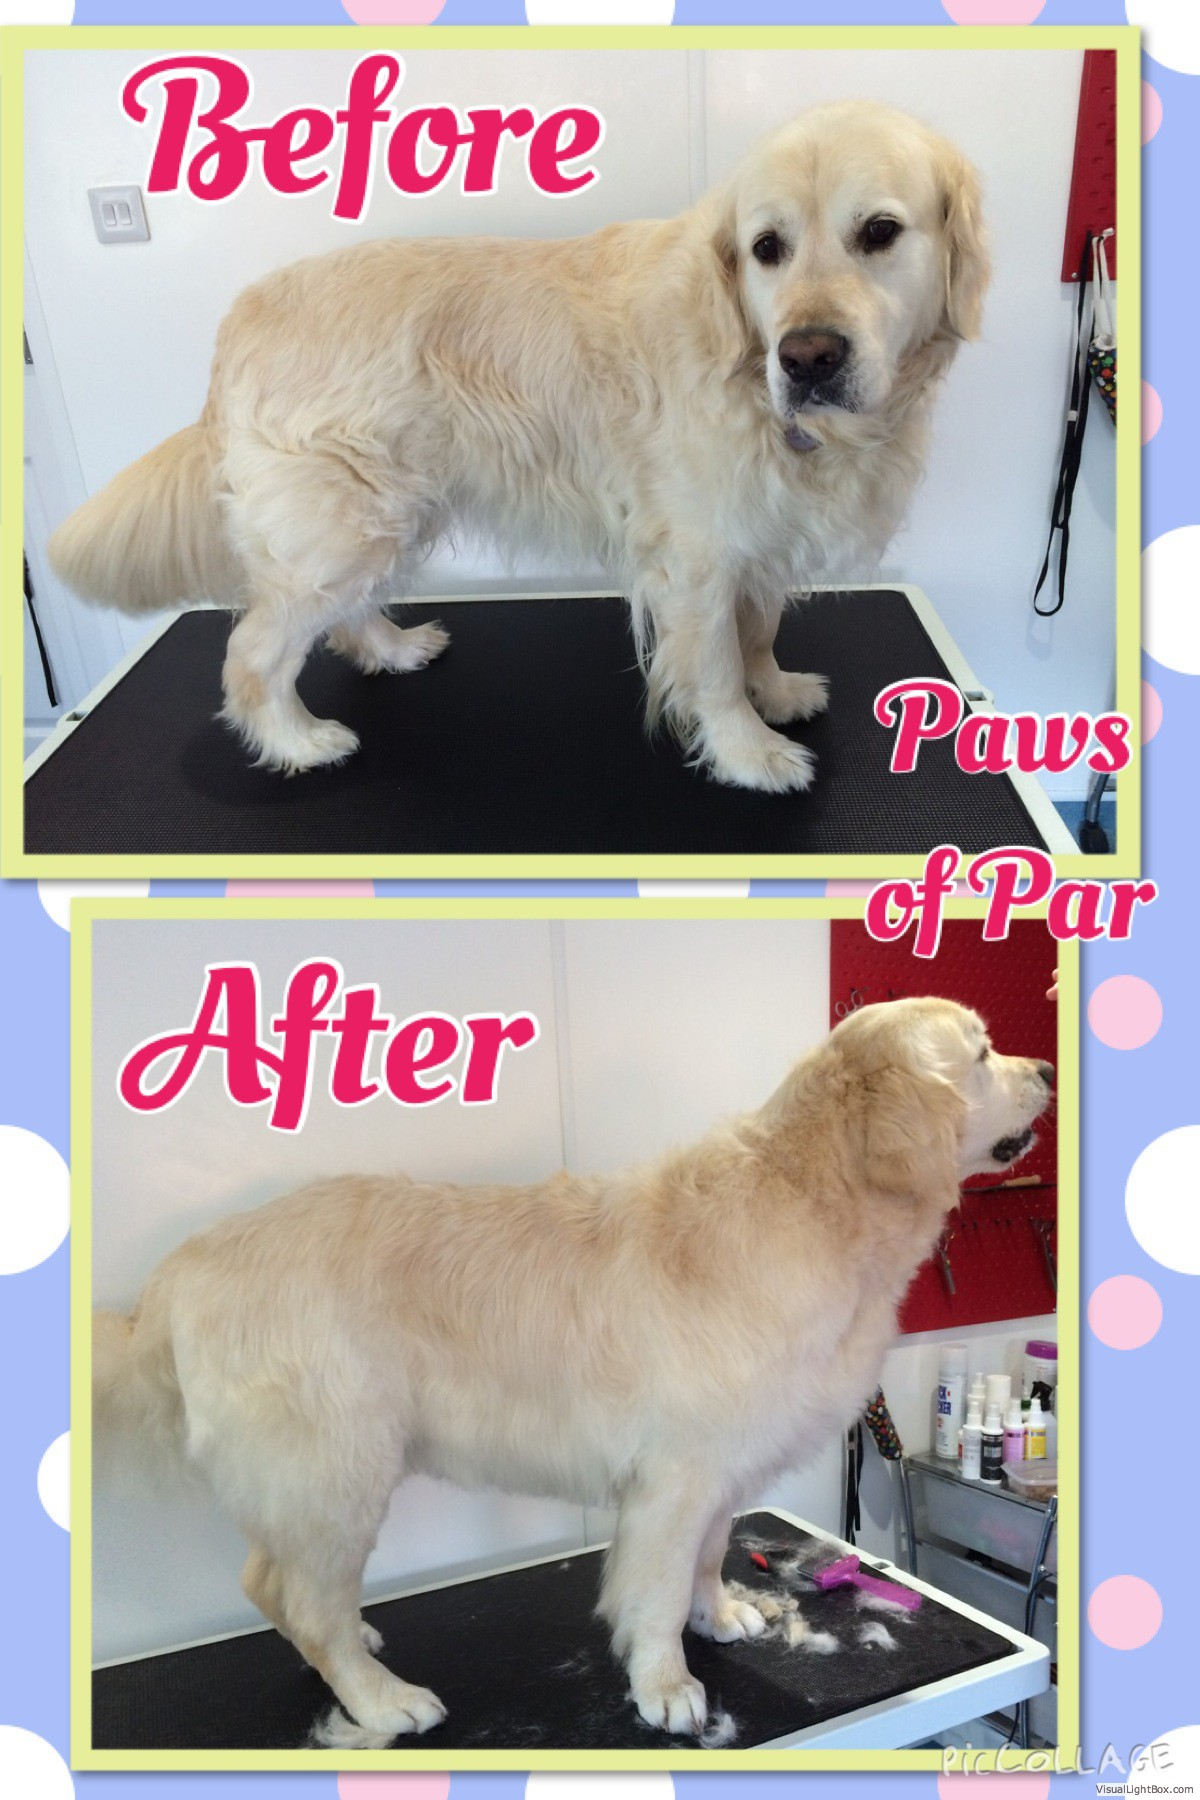 Paws Of Par Professional Dog Grooming